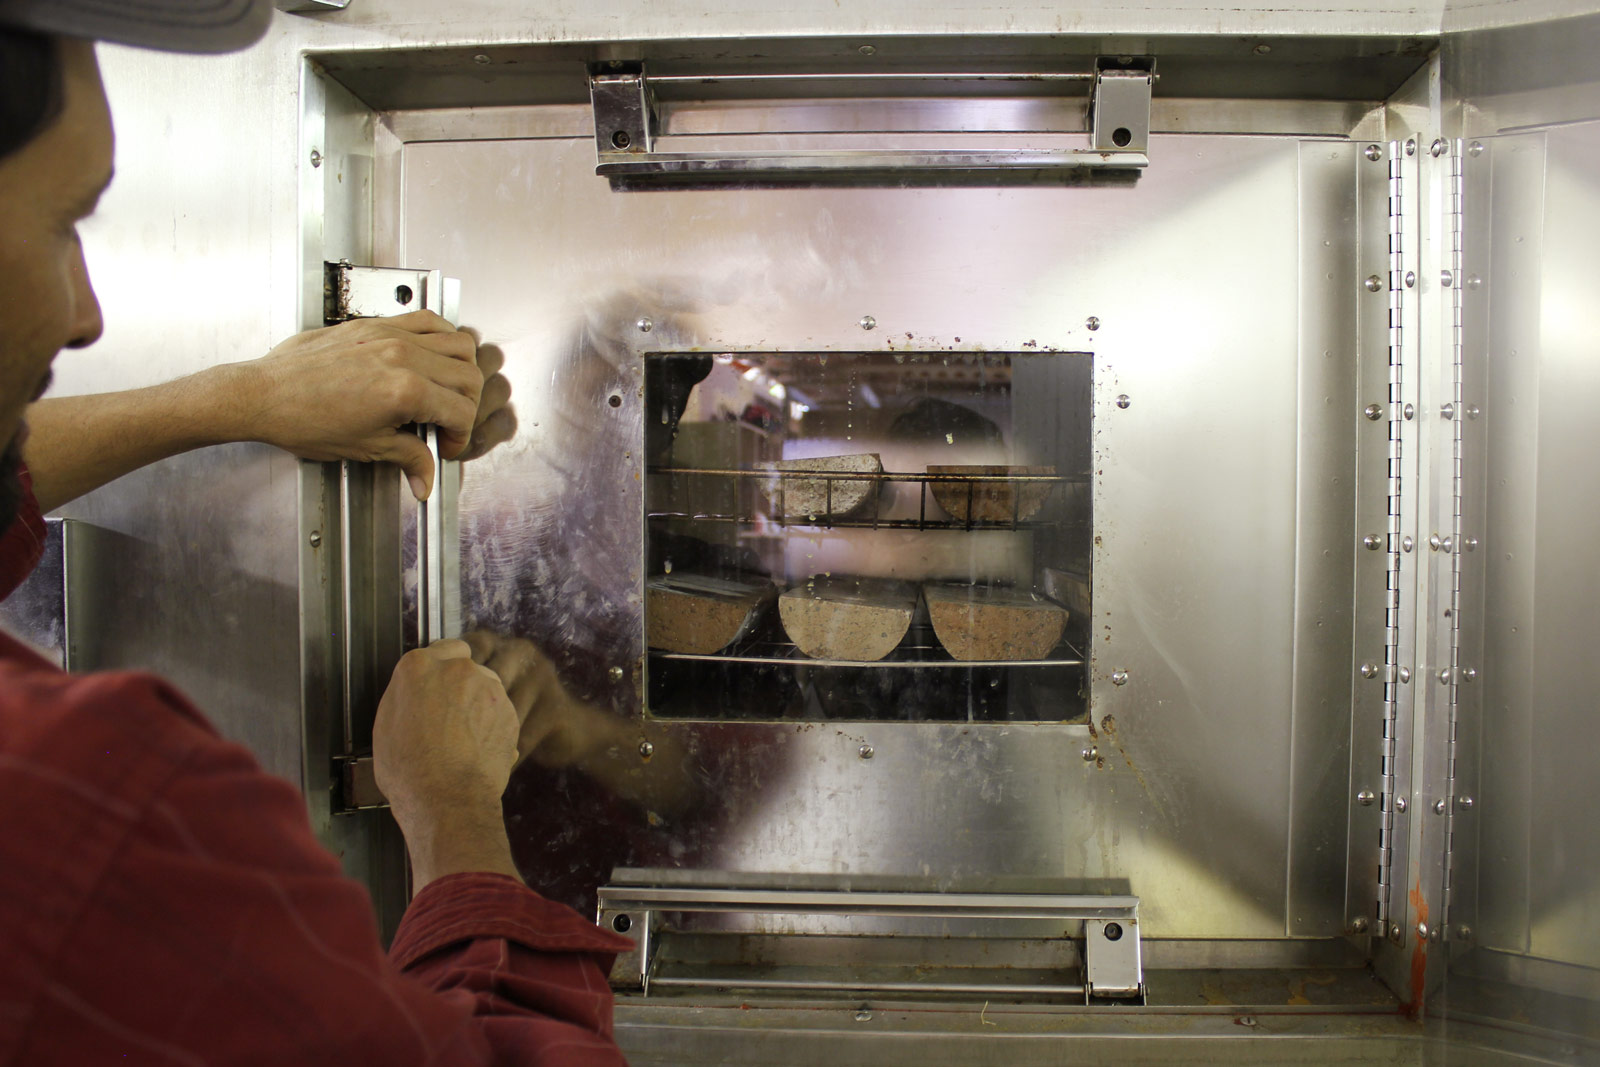 A technician checking test specimens in an environmental chamber. Curing conditions are fundamental to the success of Watershed Materials' geopolymer masonry production. In the factory or on-site production facility, masonry curing will take place on racks adjacent to the production facility. Another benefit of Watershed Materials geopolymer technology are relatively low curing temperature requirements; waste heat from hydraulic motors used by the production machinery can be reclaimed to marginally raise ambient temperatures for curing, supplemented by solar heating where necessary.